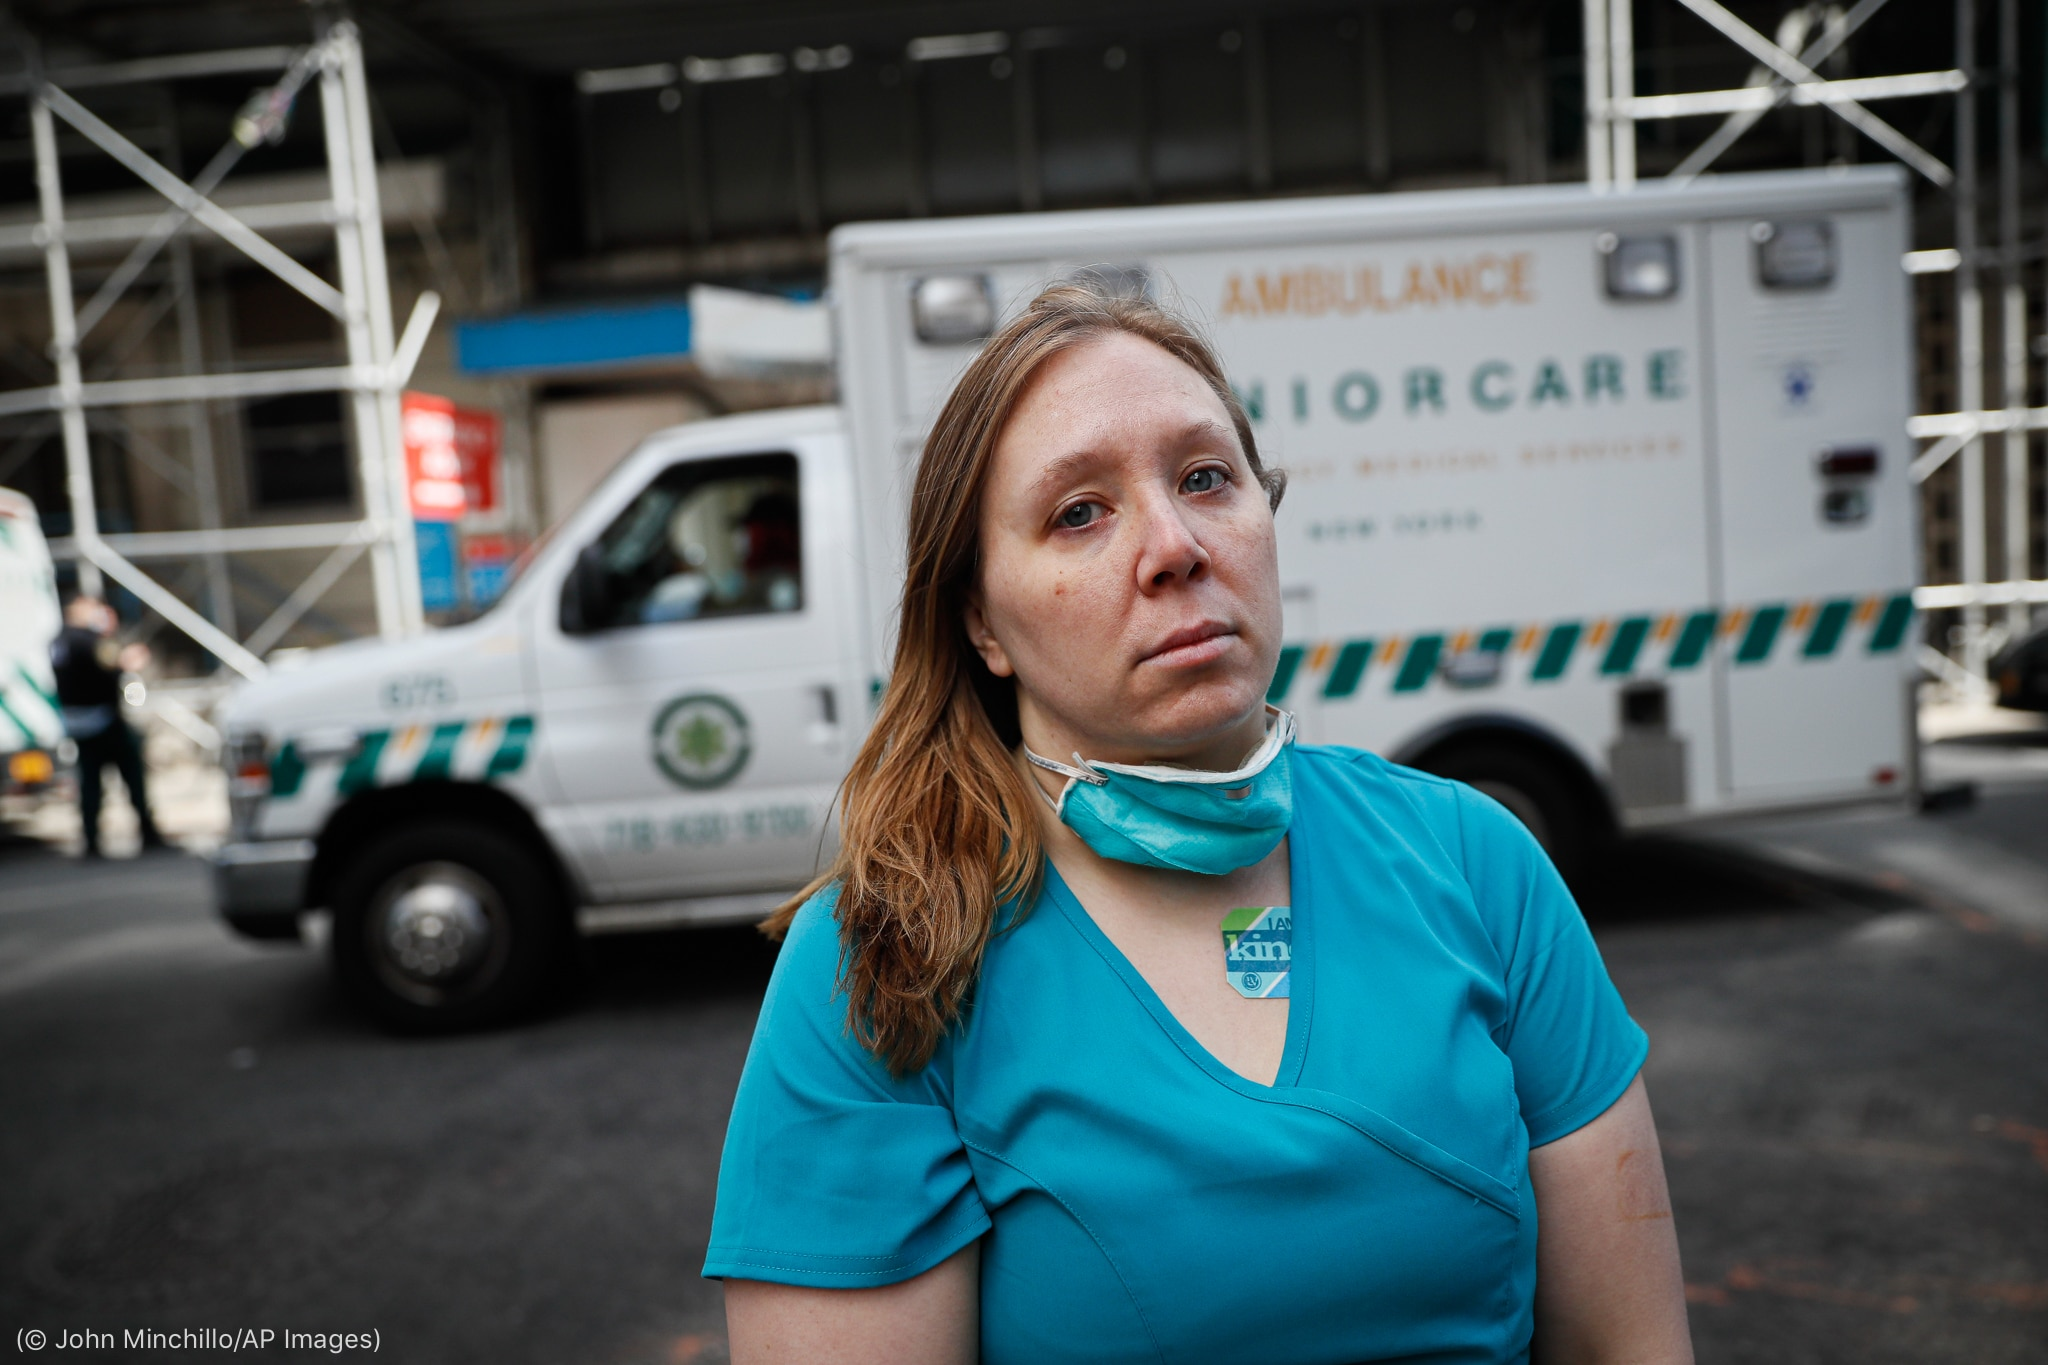 Nurse standing in front of ambulance (© John Minchillo/AP Images)